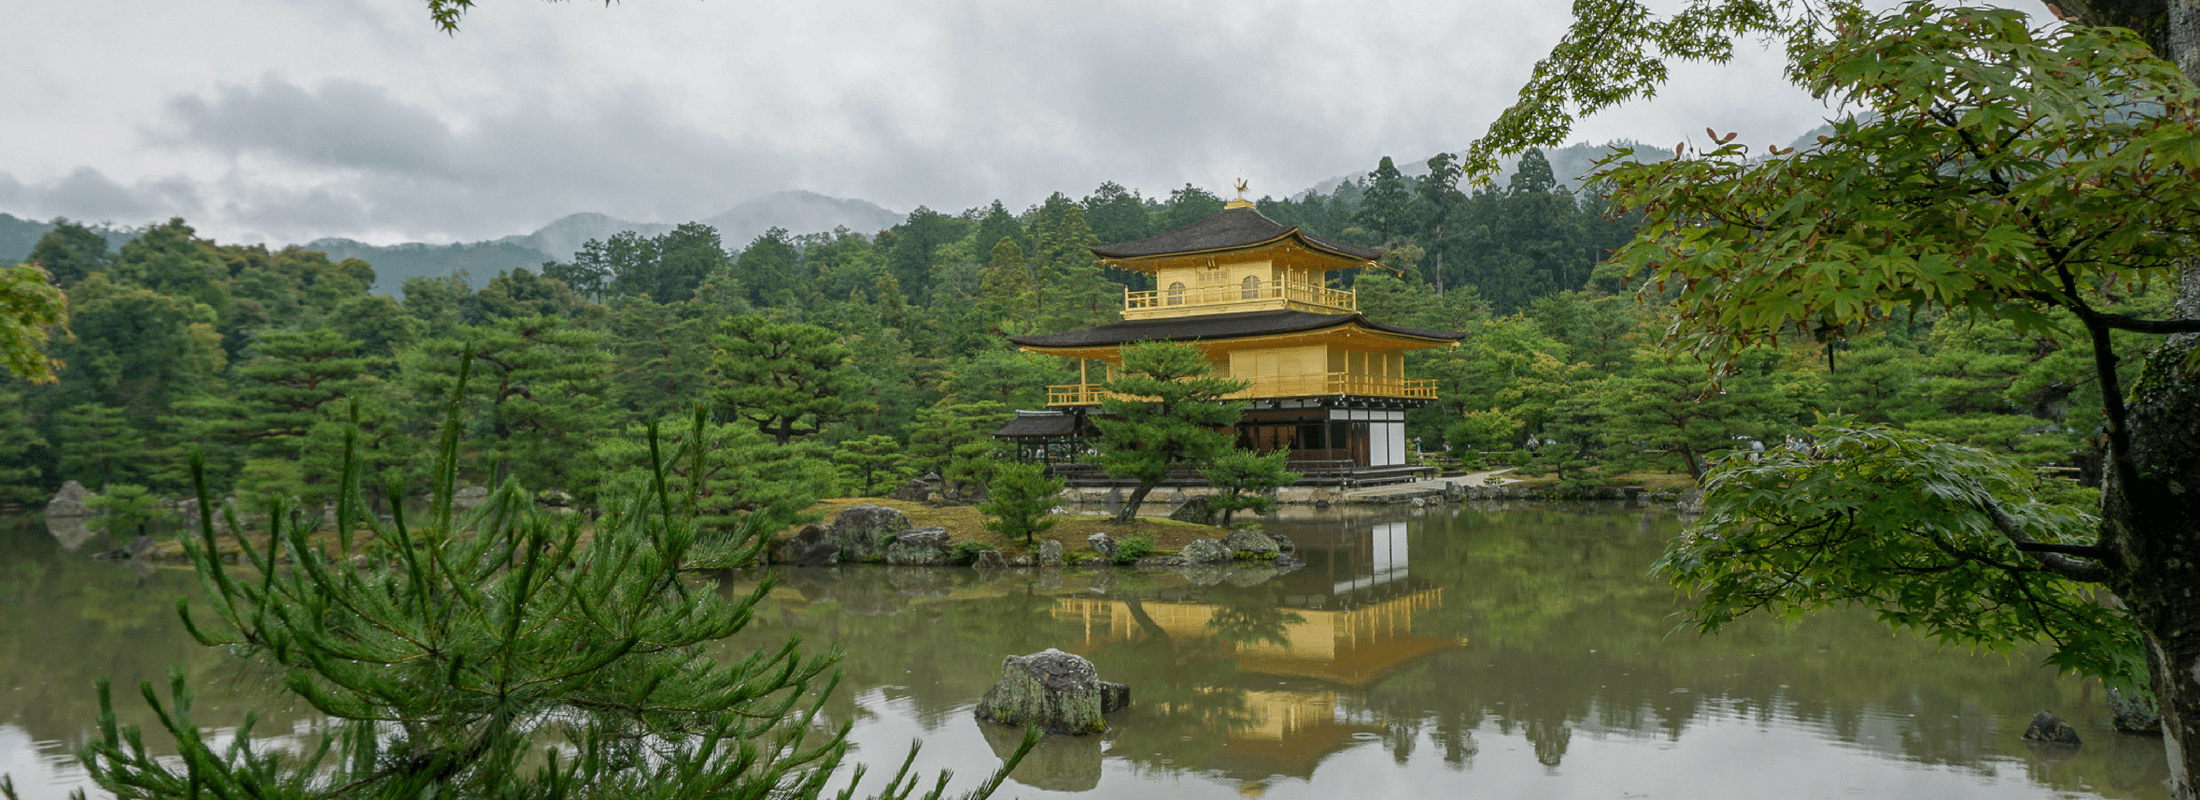 ca698ddb6b Kyoto 4 Day Itinerary - What to do in the Traditional Japanese City